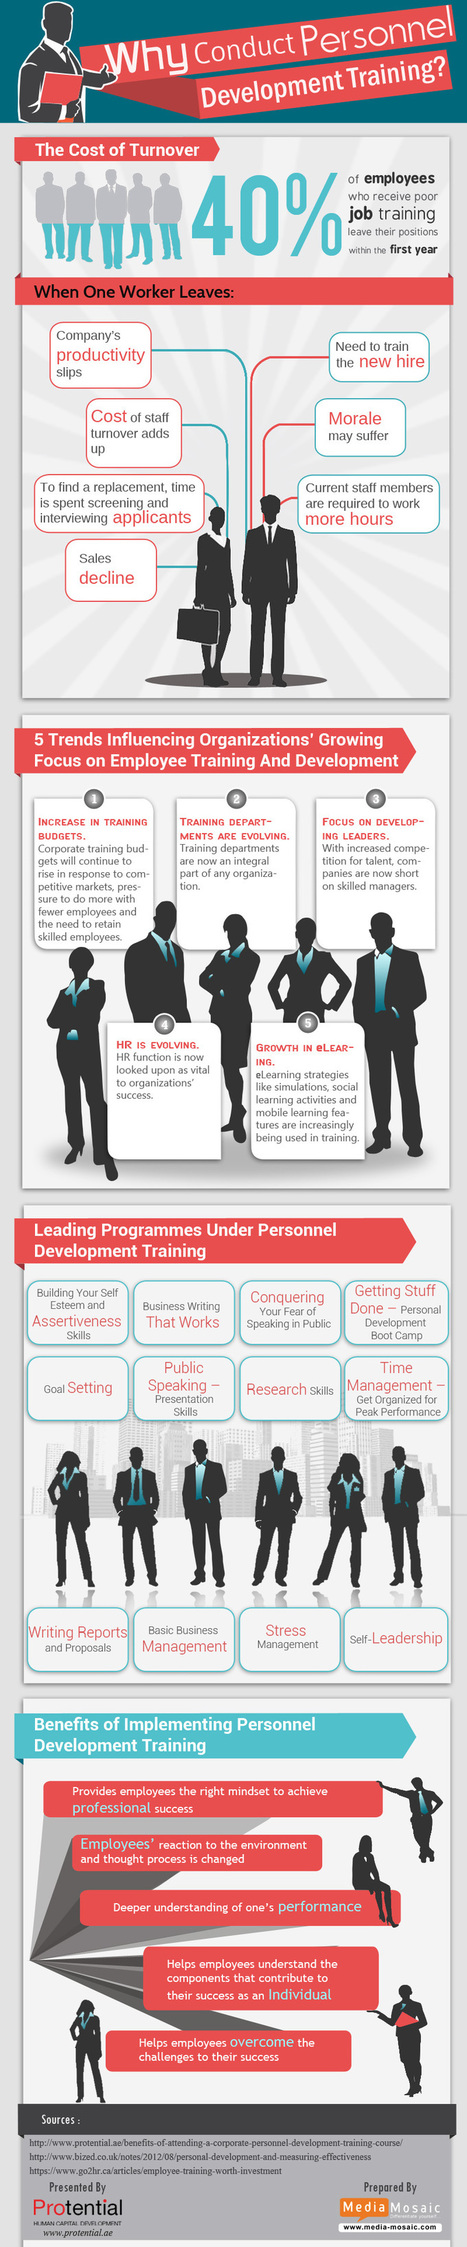 Why to Conduct Personal Development Training [Infographic] I Tim Scott | Entretiens Professionnels | Scoop.it